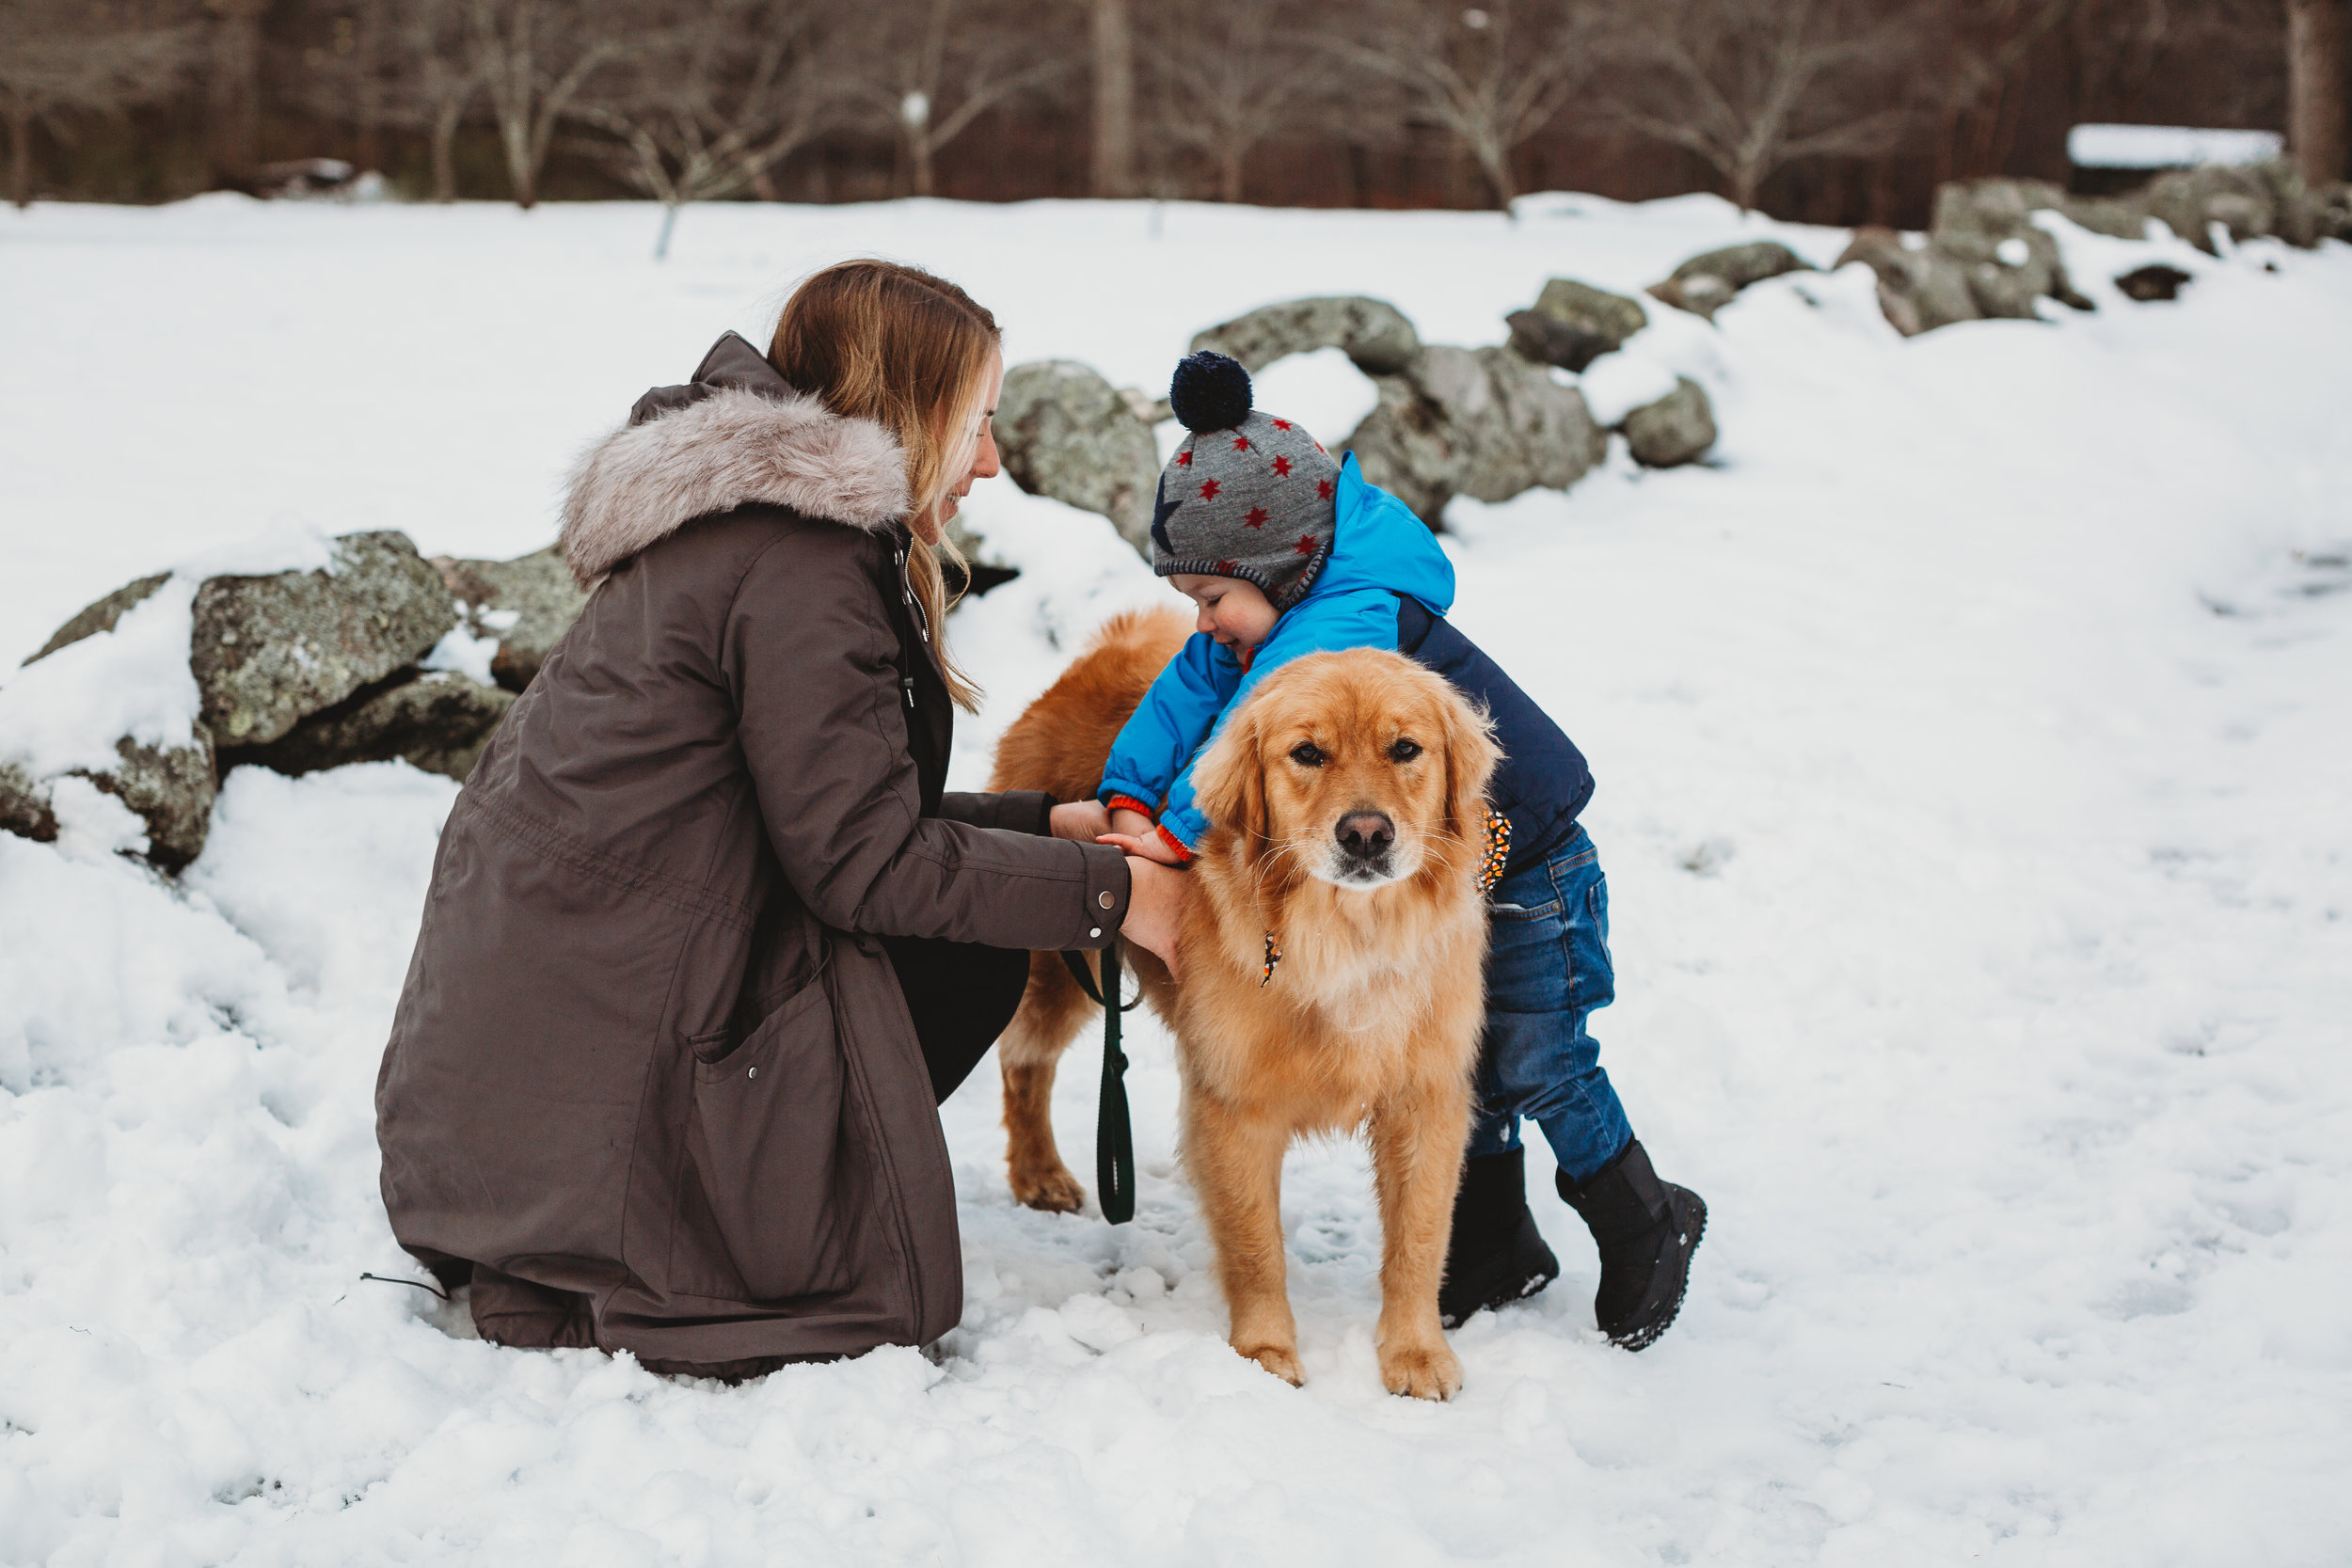 Good golden retriever patiently letting toddler climb on her. Old North Bridge, Concord family photographer.